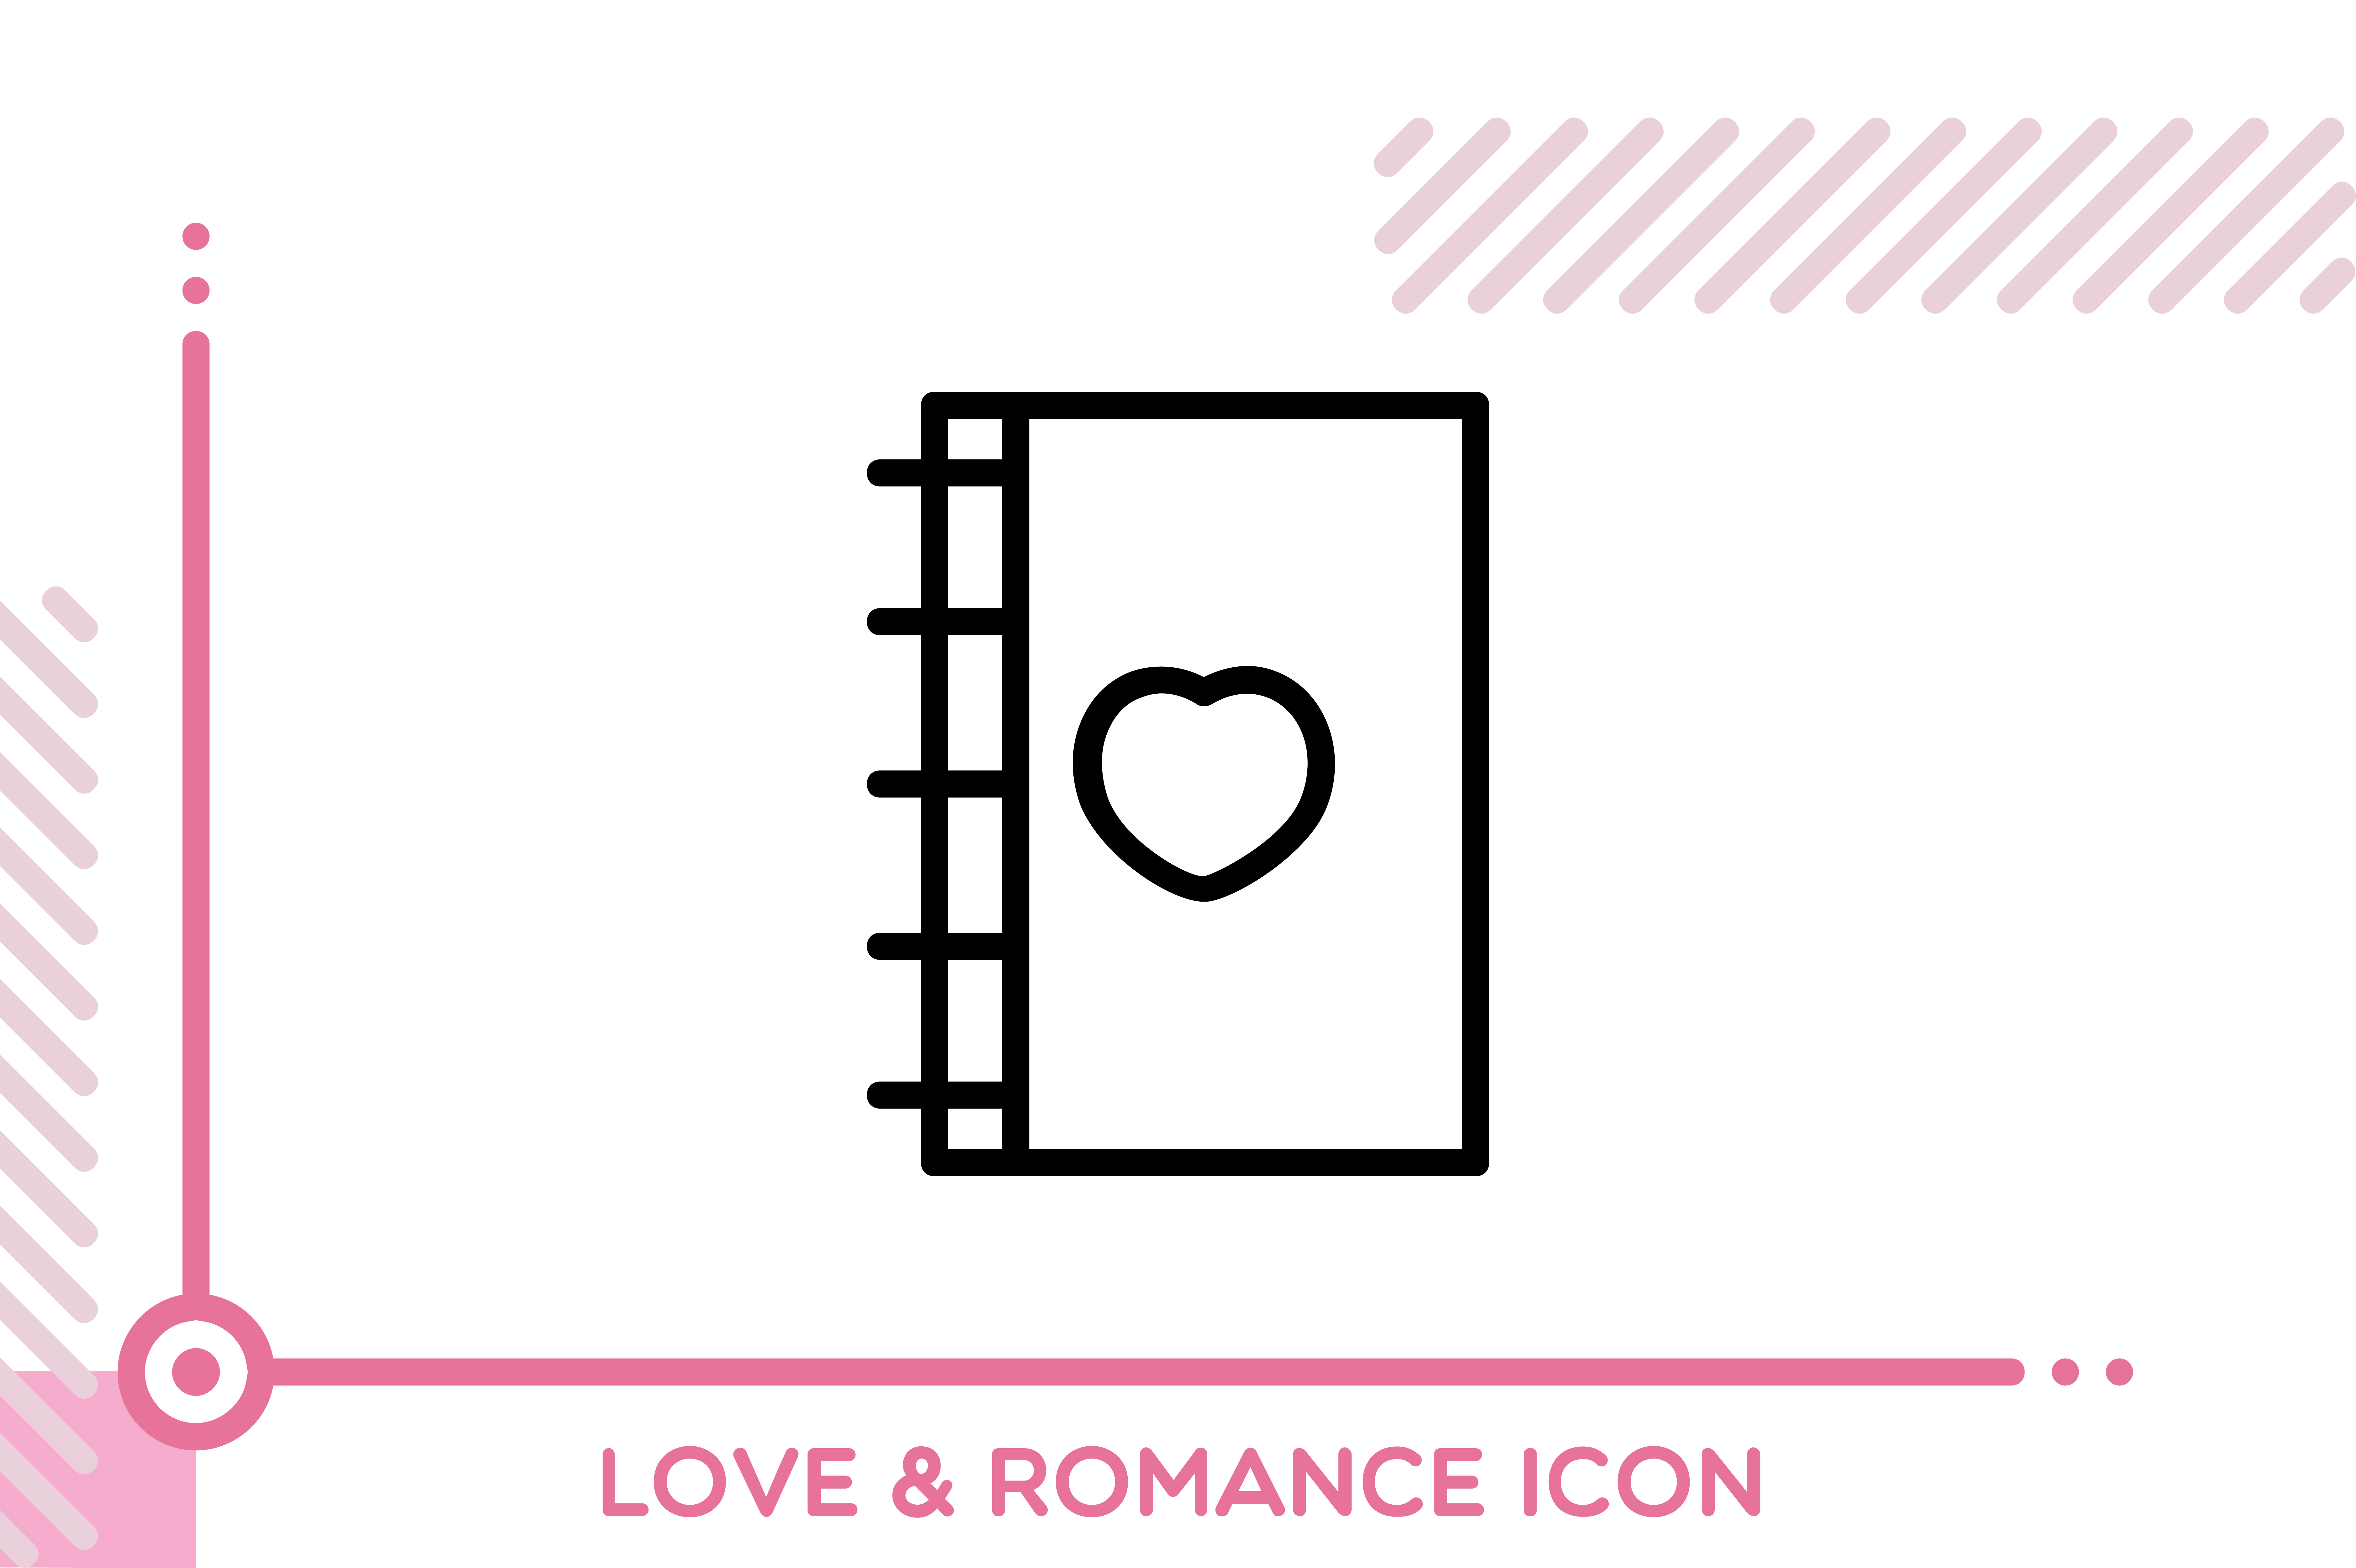 Download Free Love And Romance Journal Graphic By Freddyadho Creative Fabrica for Cricut Explore, Silhouette and other cutting machines.